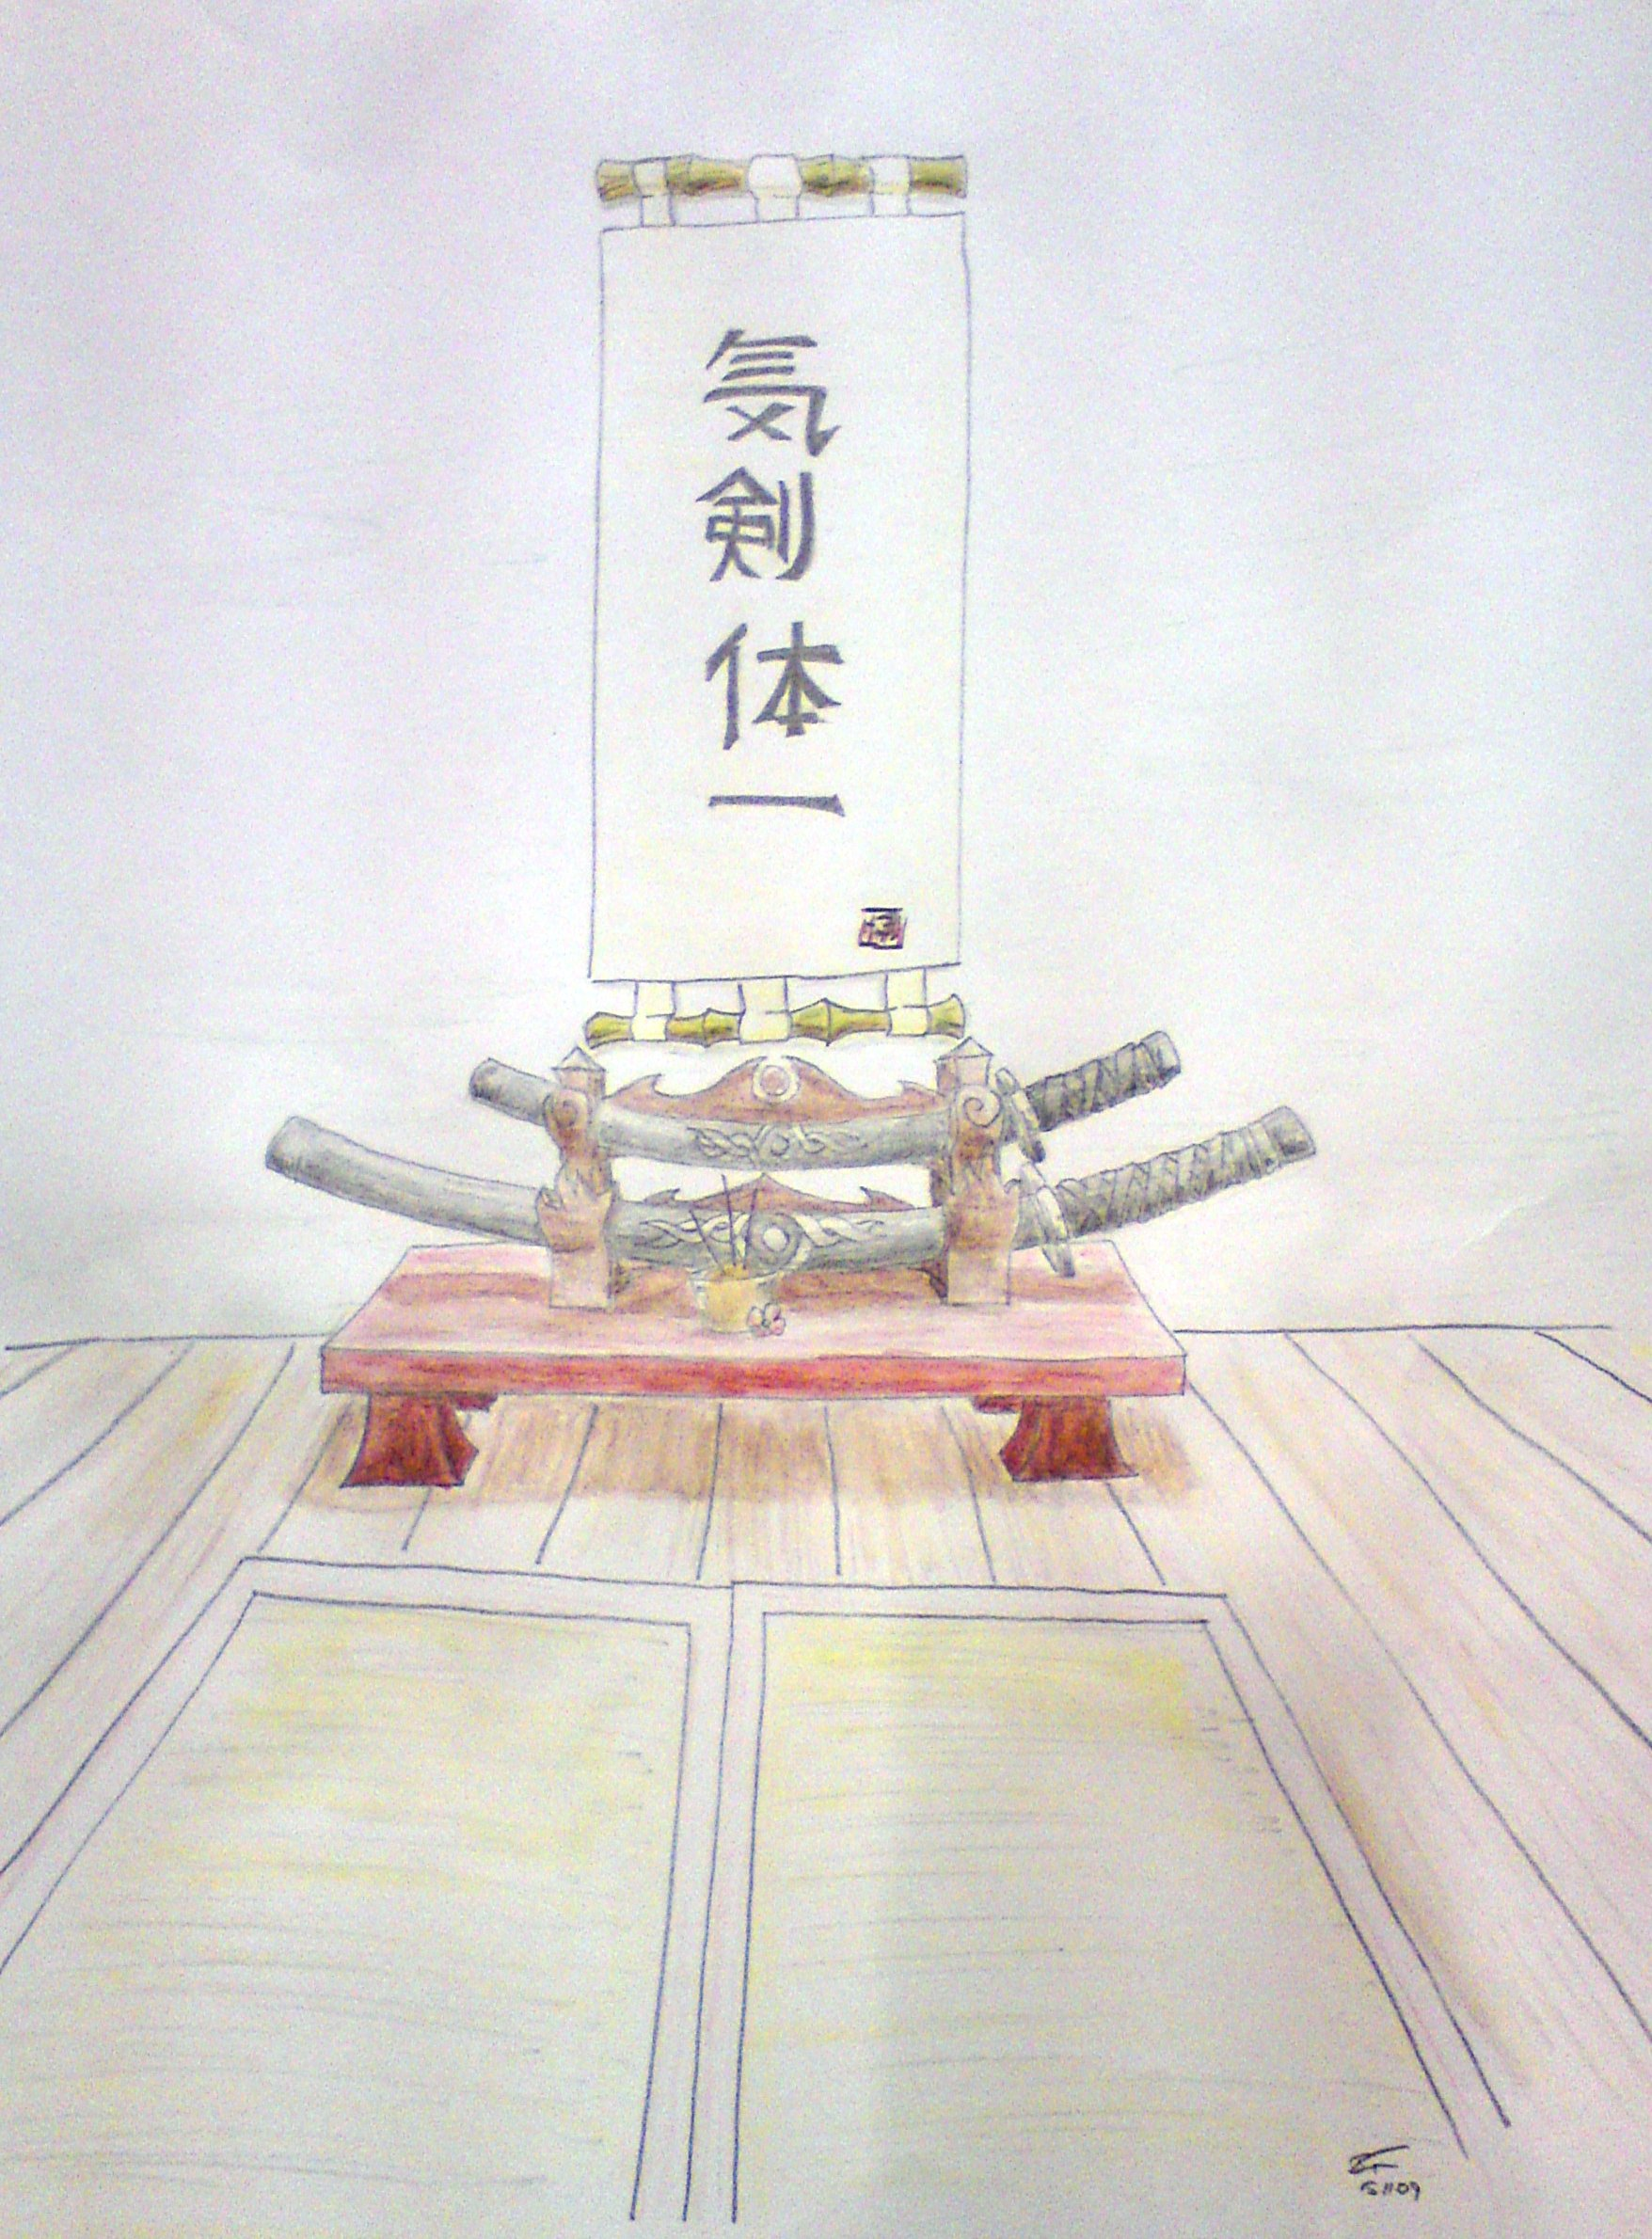 Samurai Daisho (Set of Katana and Wakizashi) in the dojo. Pencil and Aquarellpencils.